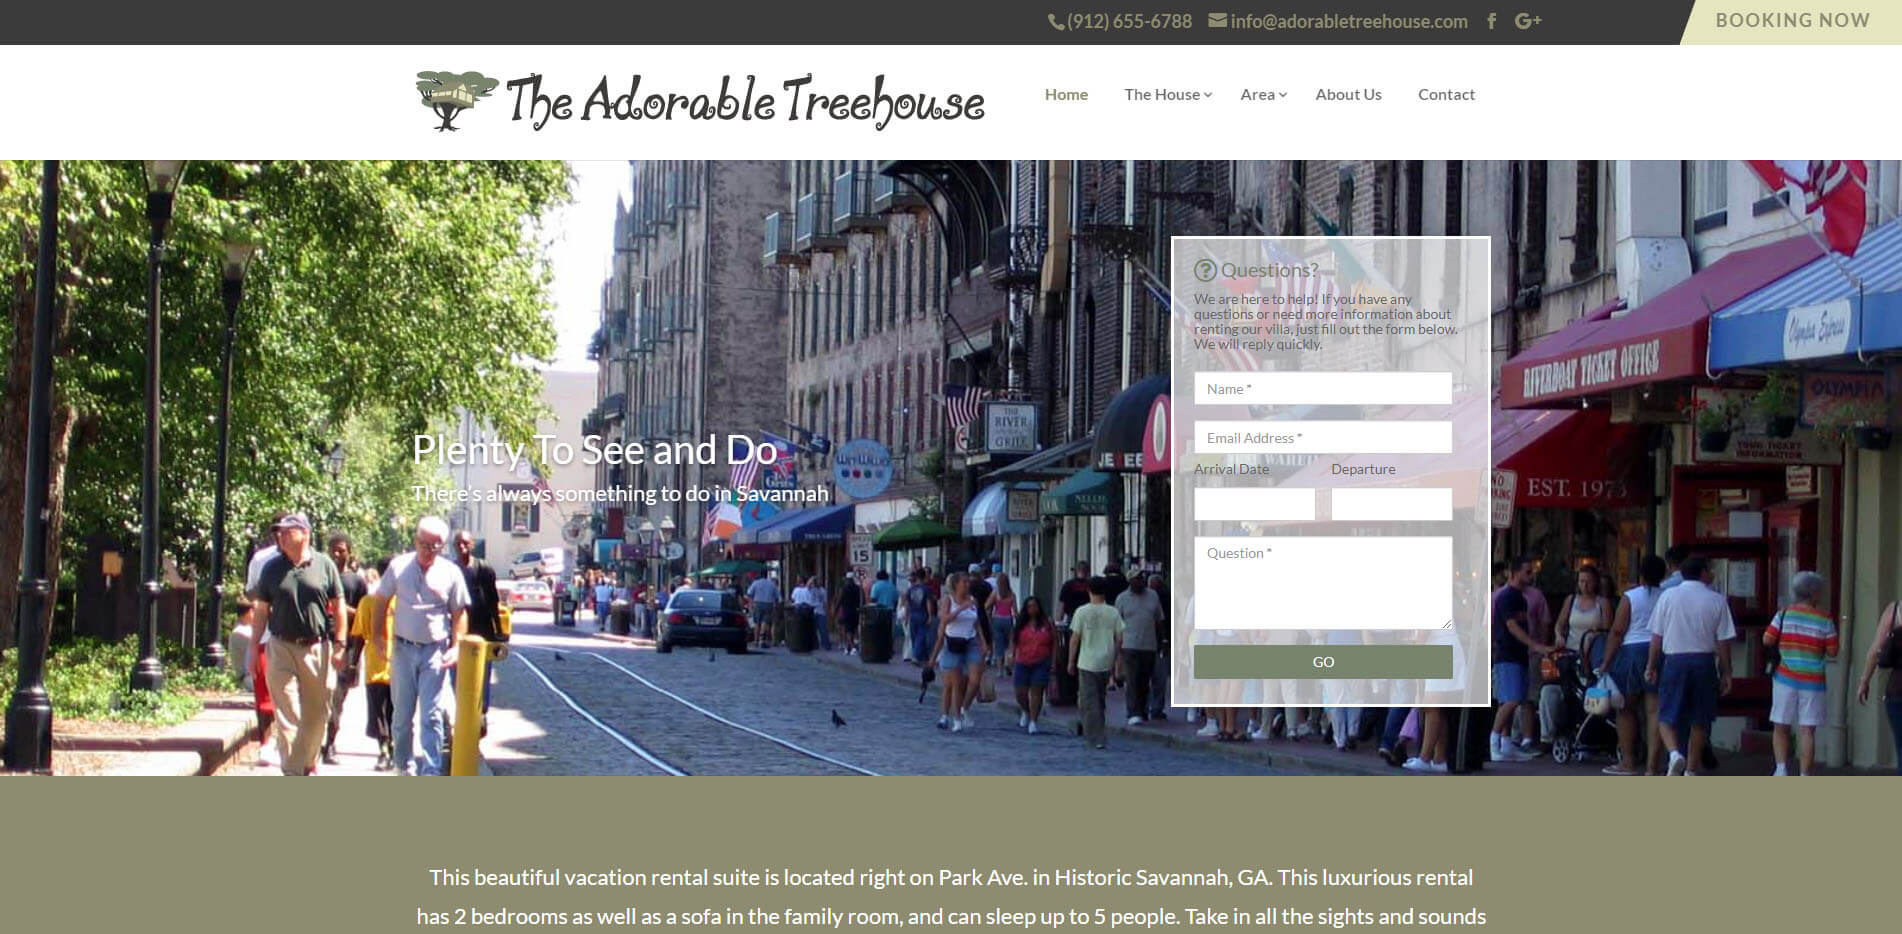 A screenshot of the website Adorable Treehouse